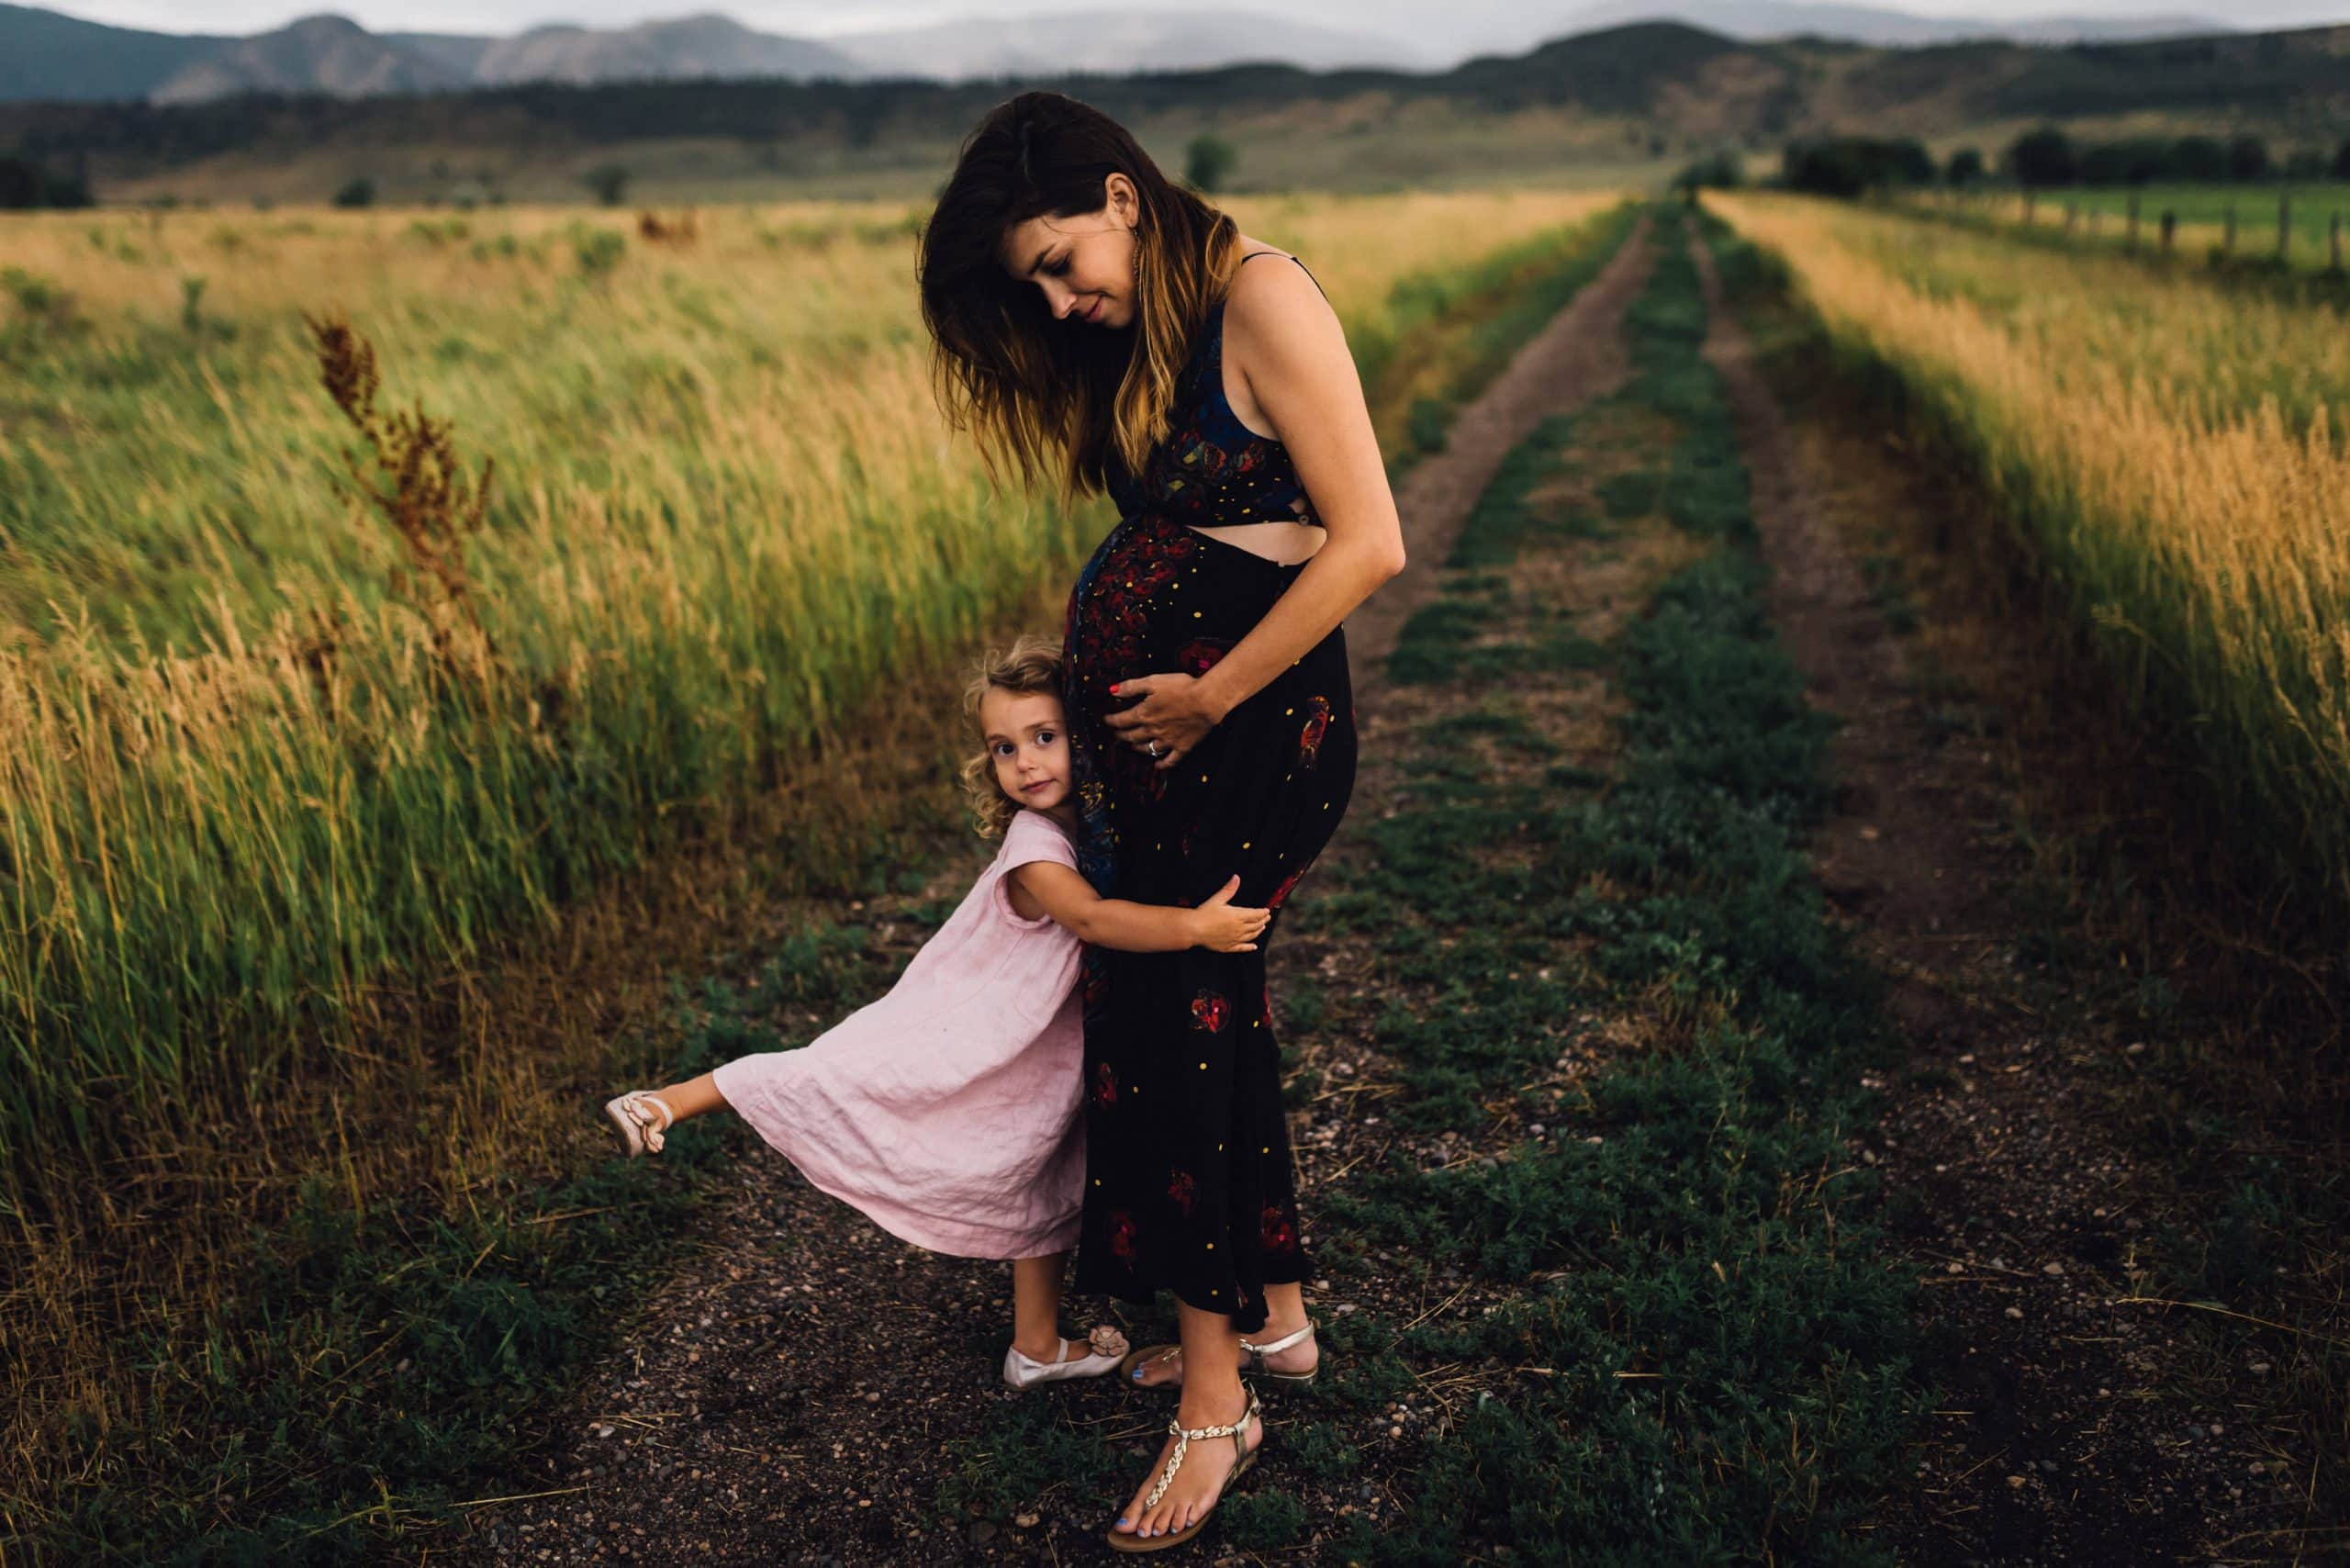 Girl embracing her pregnant mother in the foothills of the Colorado mountains.